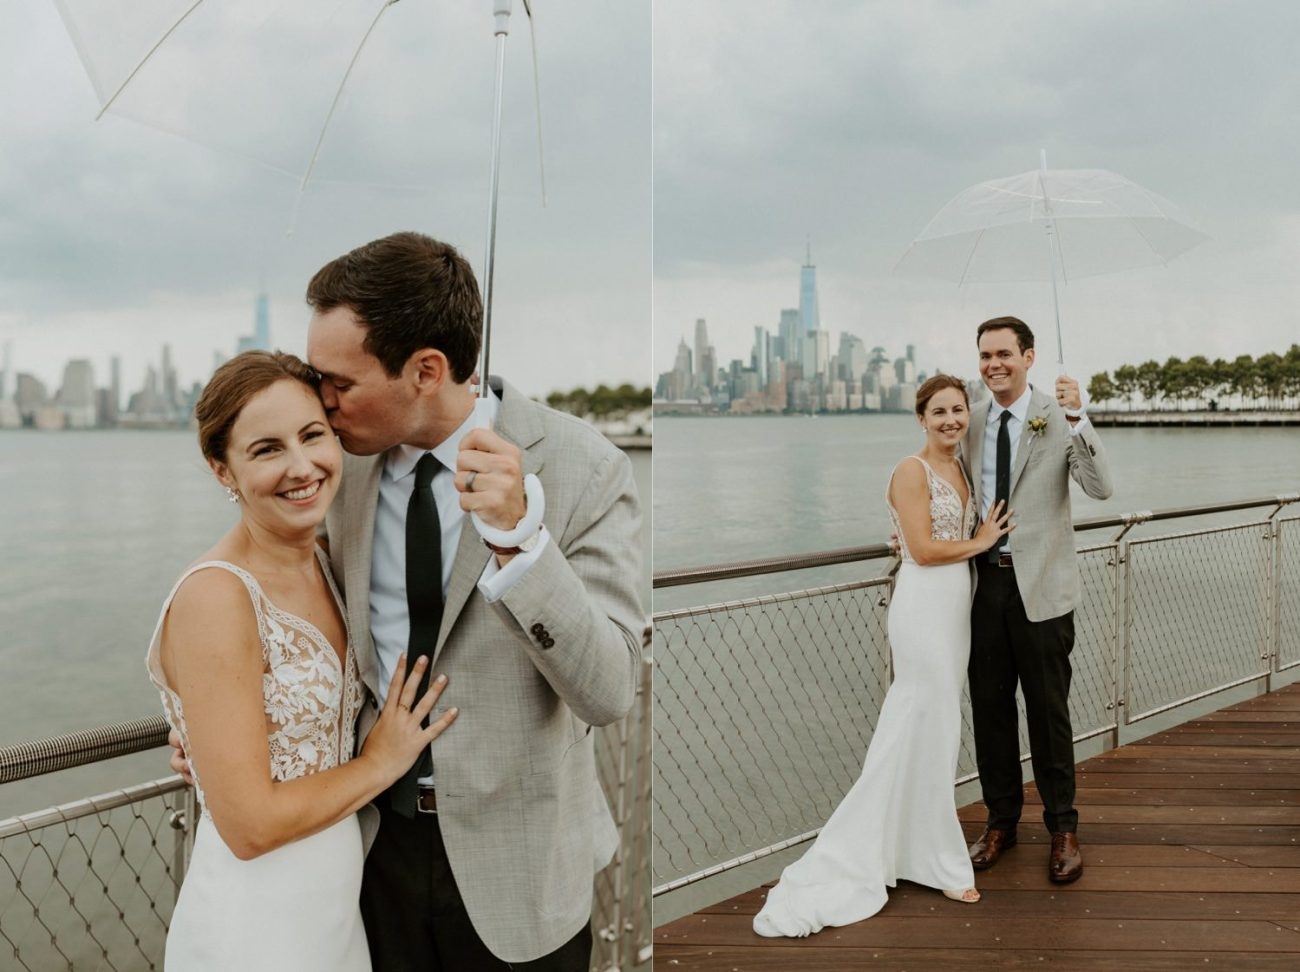 Antique Loft Hoboken Wedding New Jersey Wedding Photographer Anais Possamai Photography 044